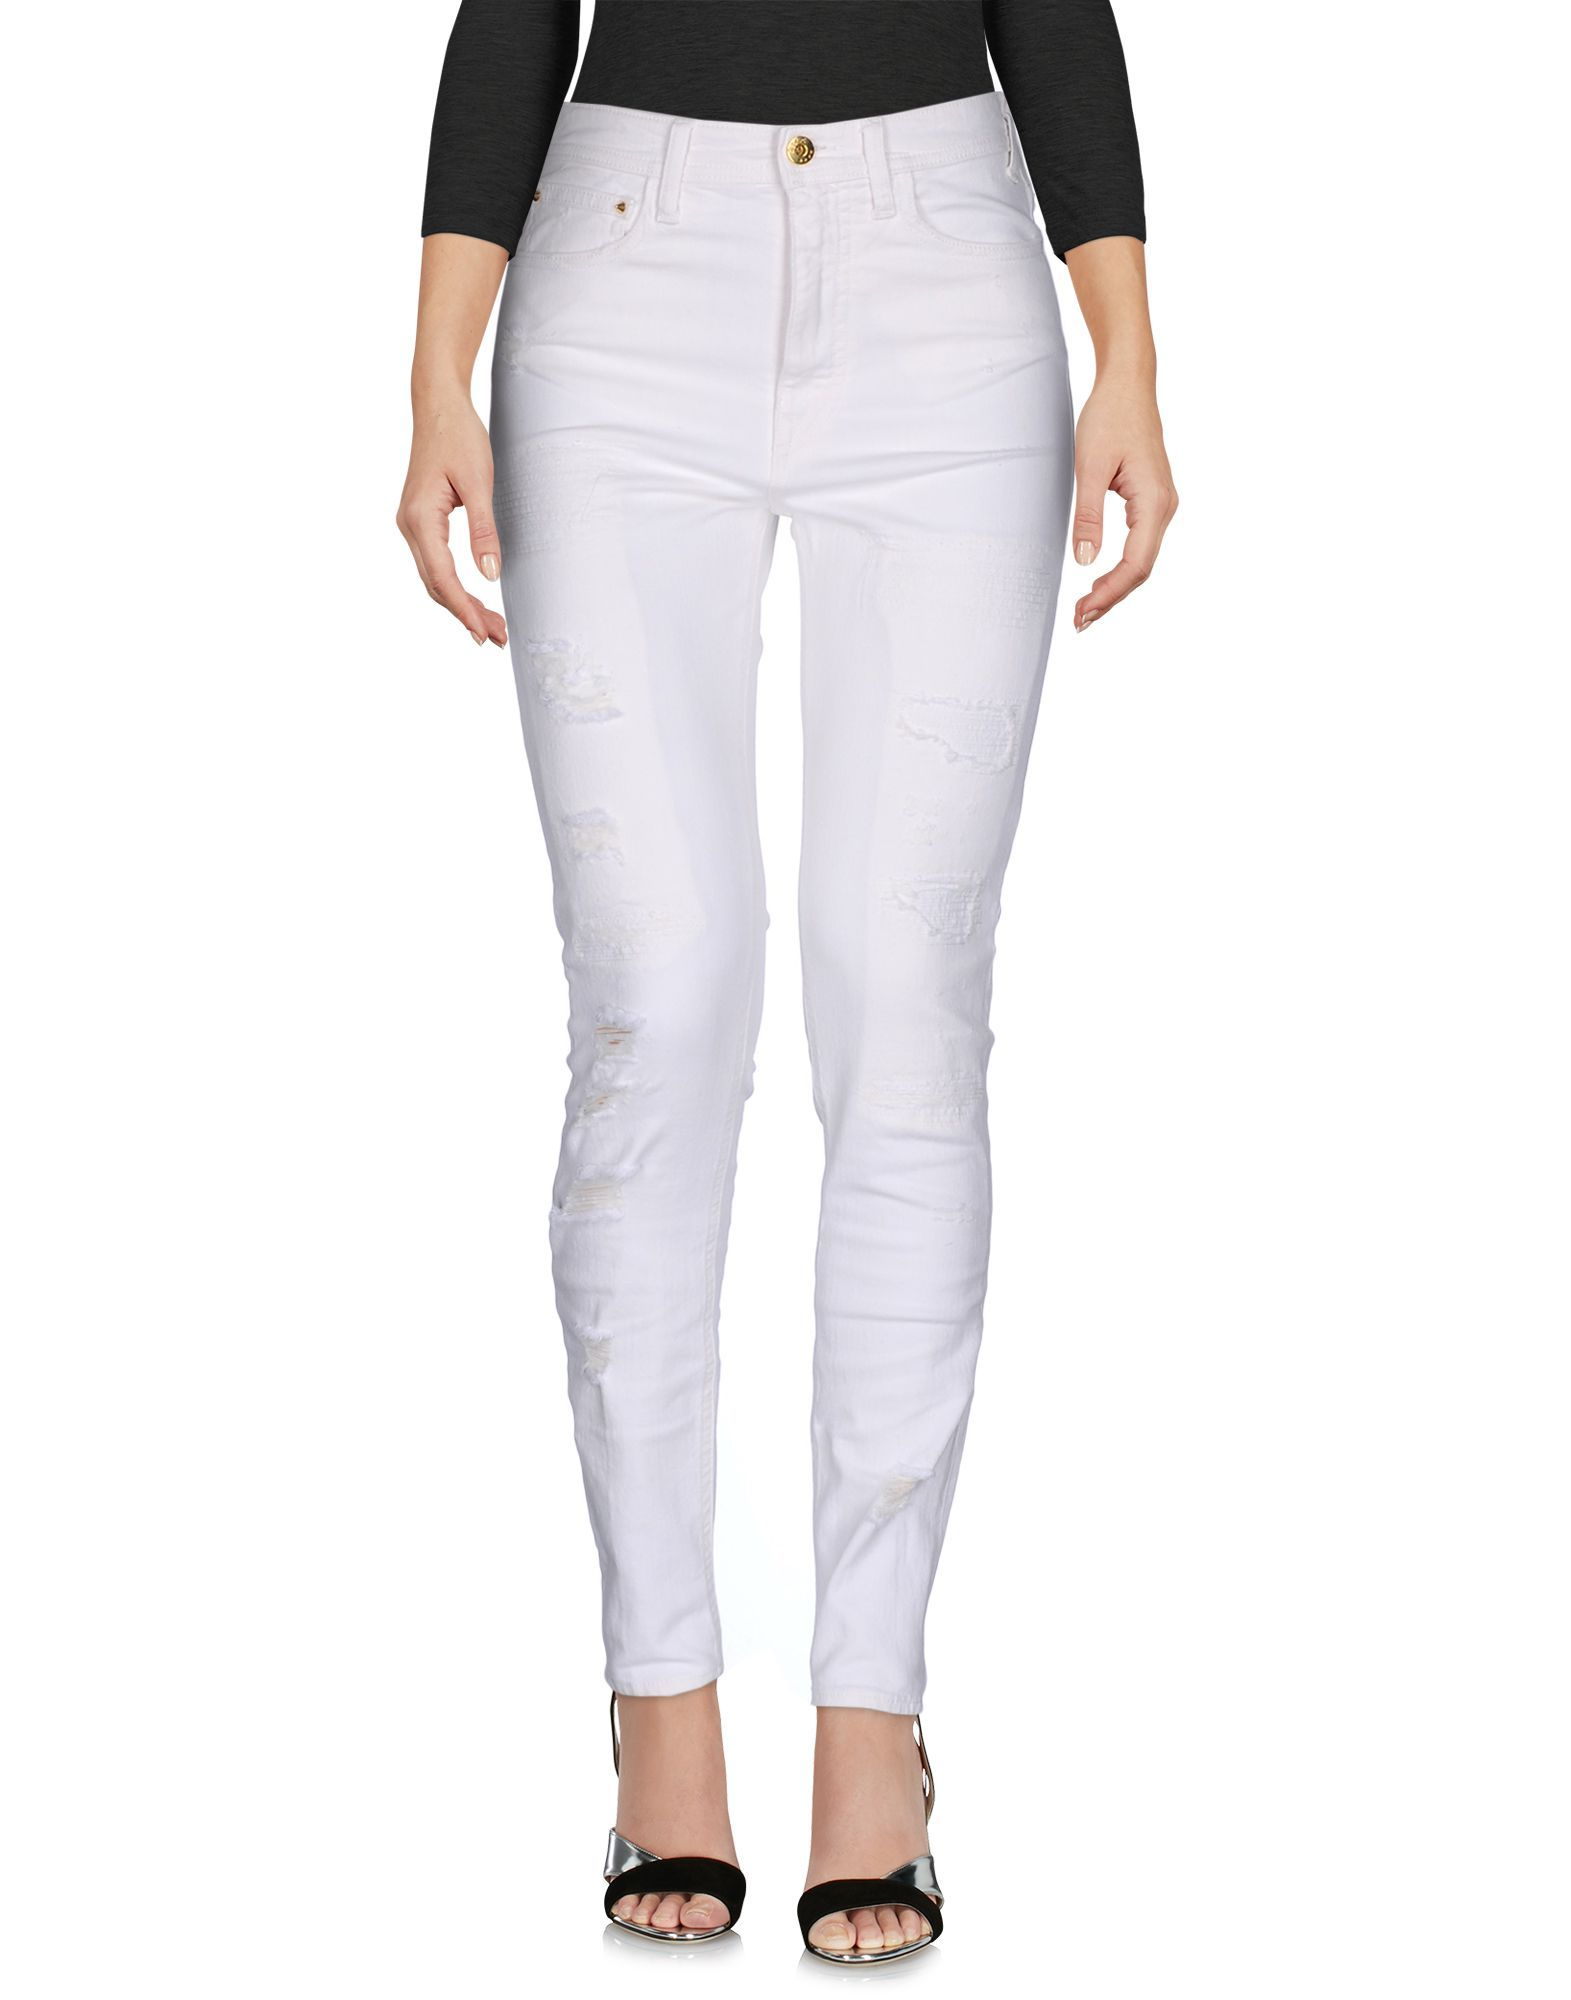 Cycle White Cotton Skinny Jeans